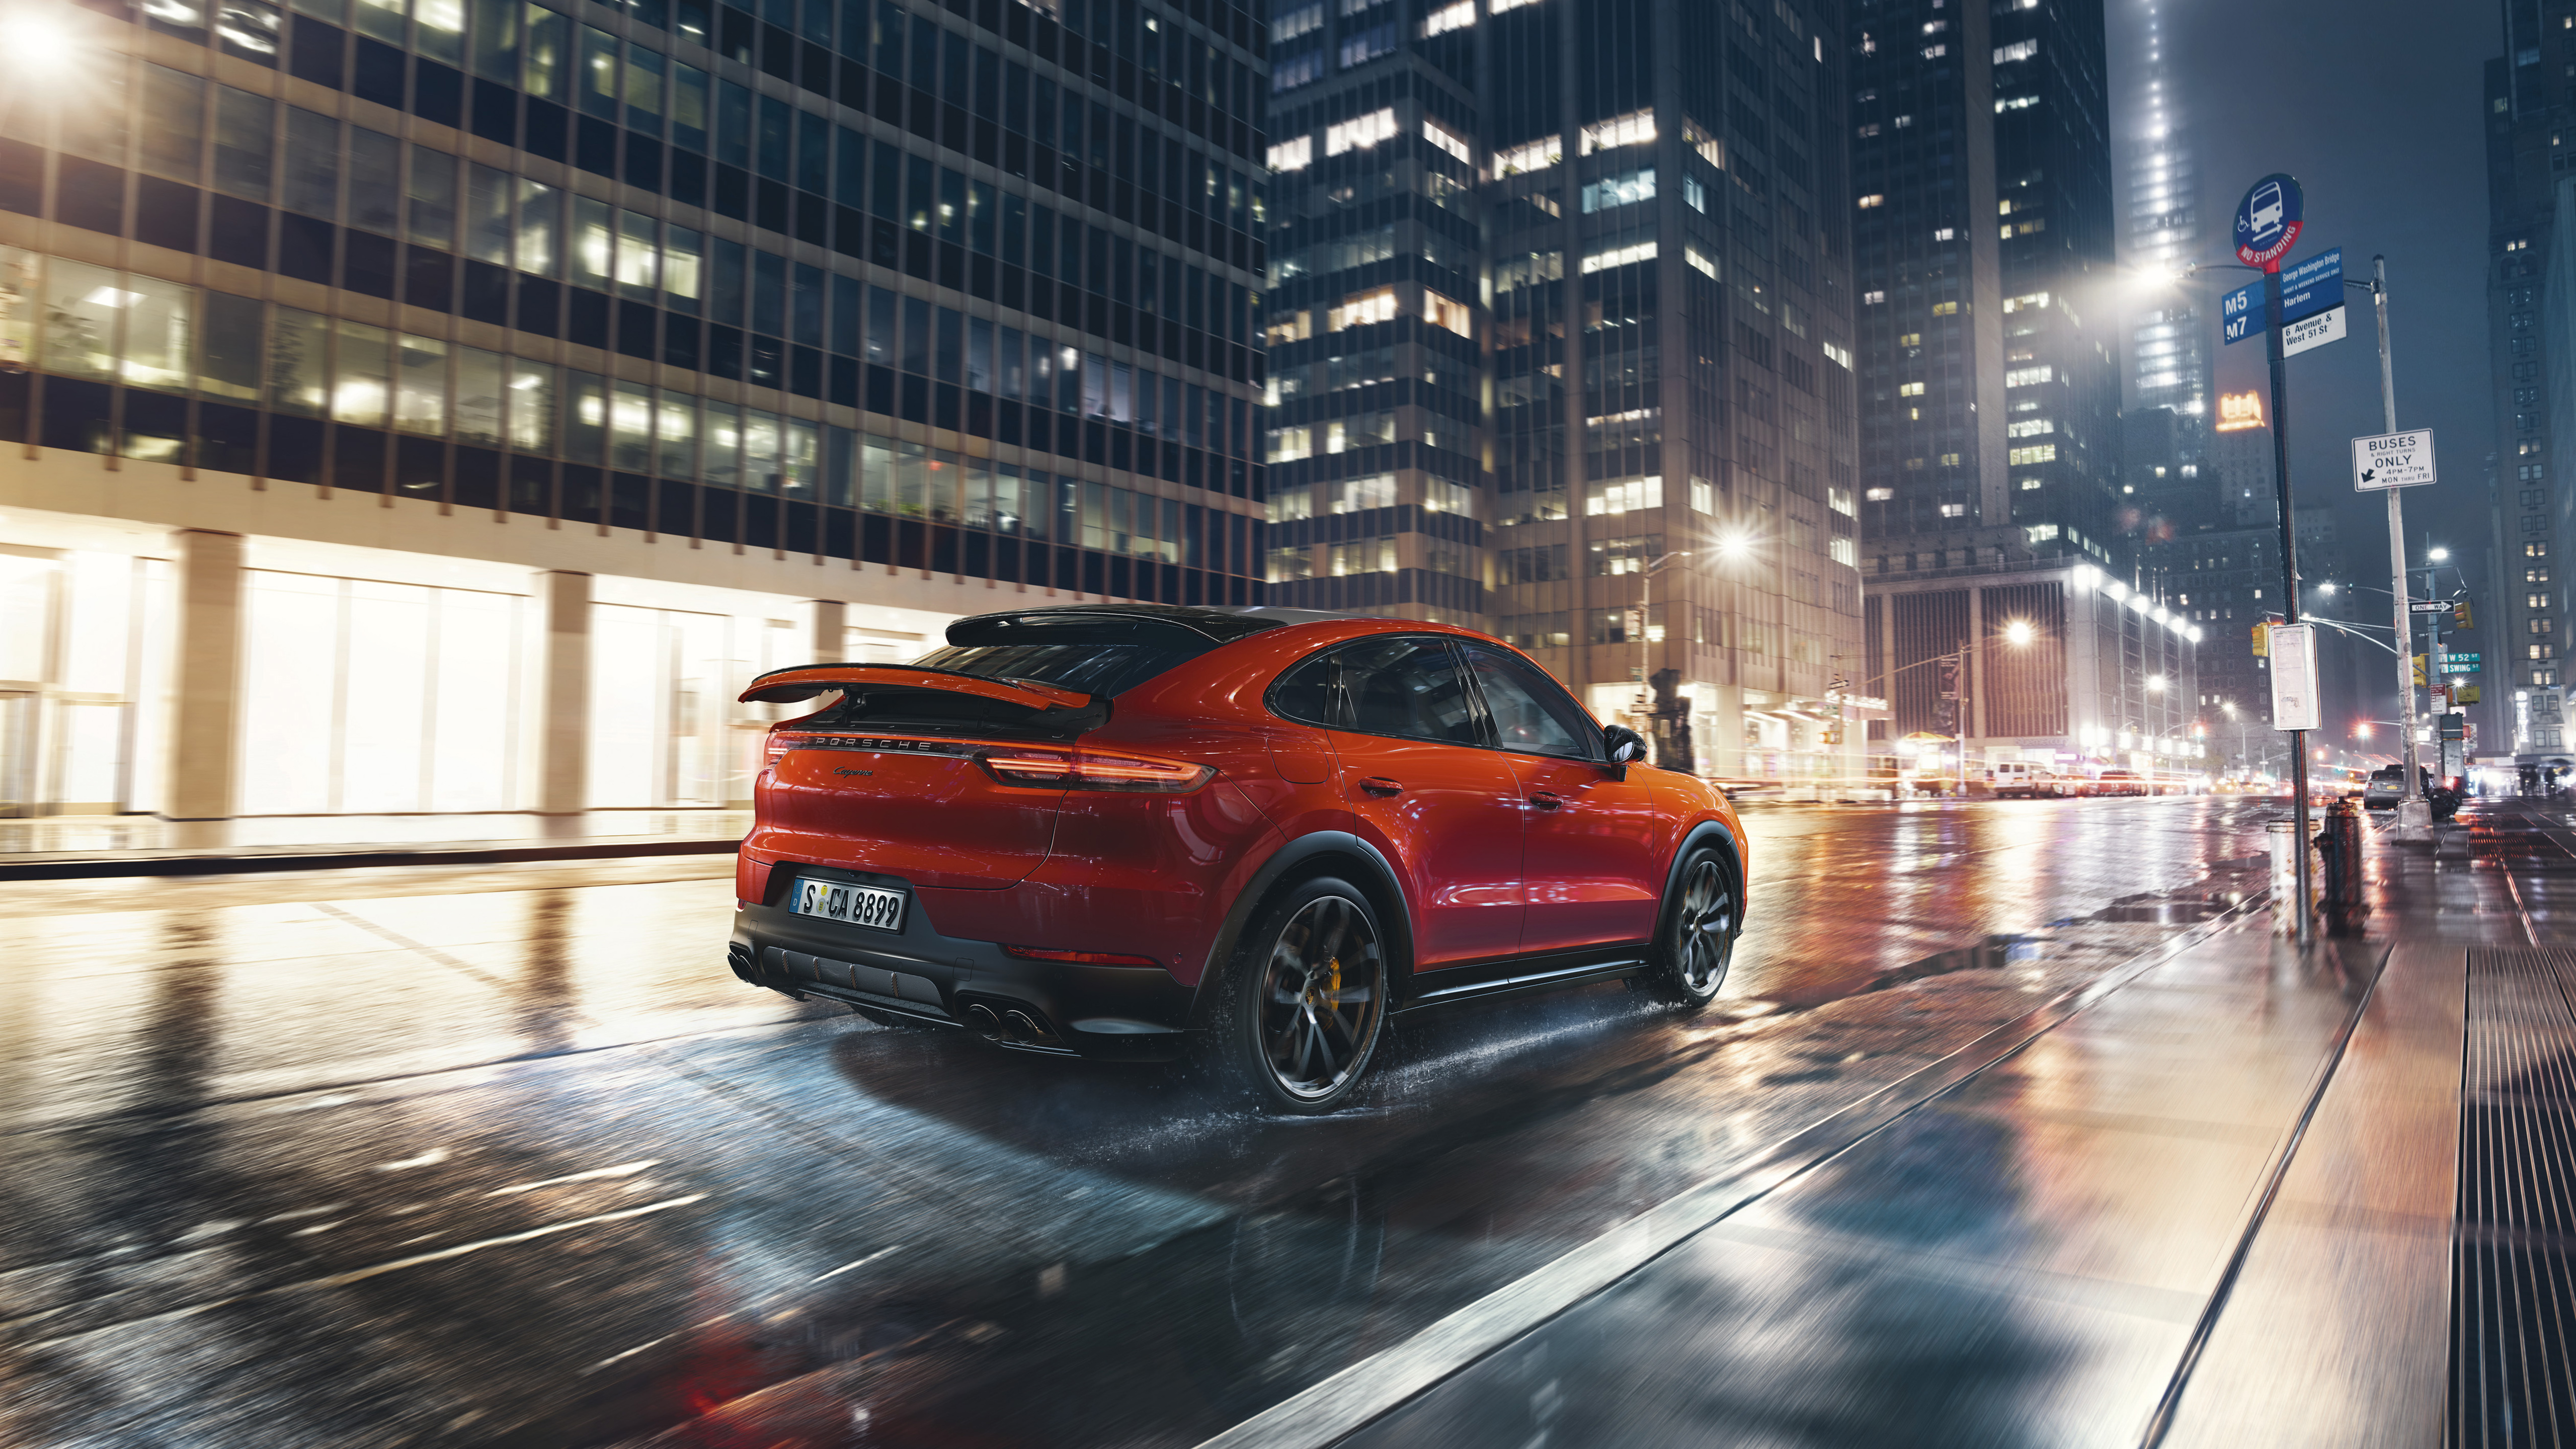 Porsche Cayenne Coupe 2019 4K 4 Wallpaper HD Car Wallpapers ID 5120x2880